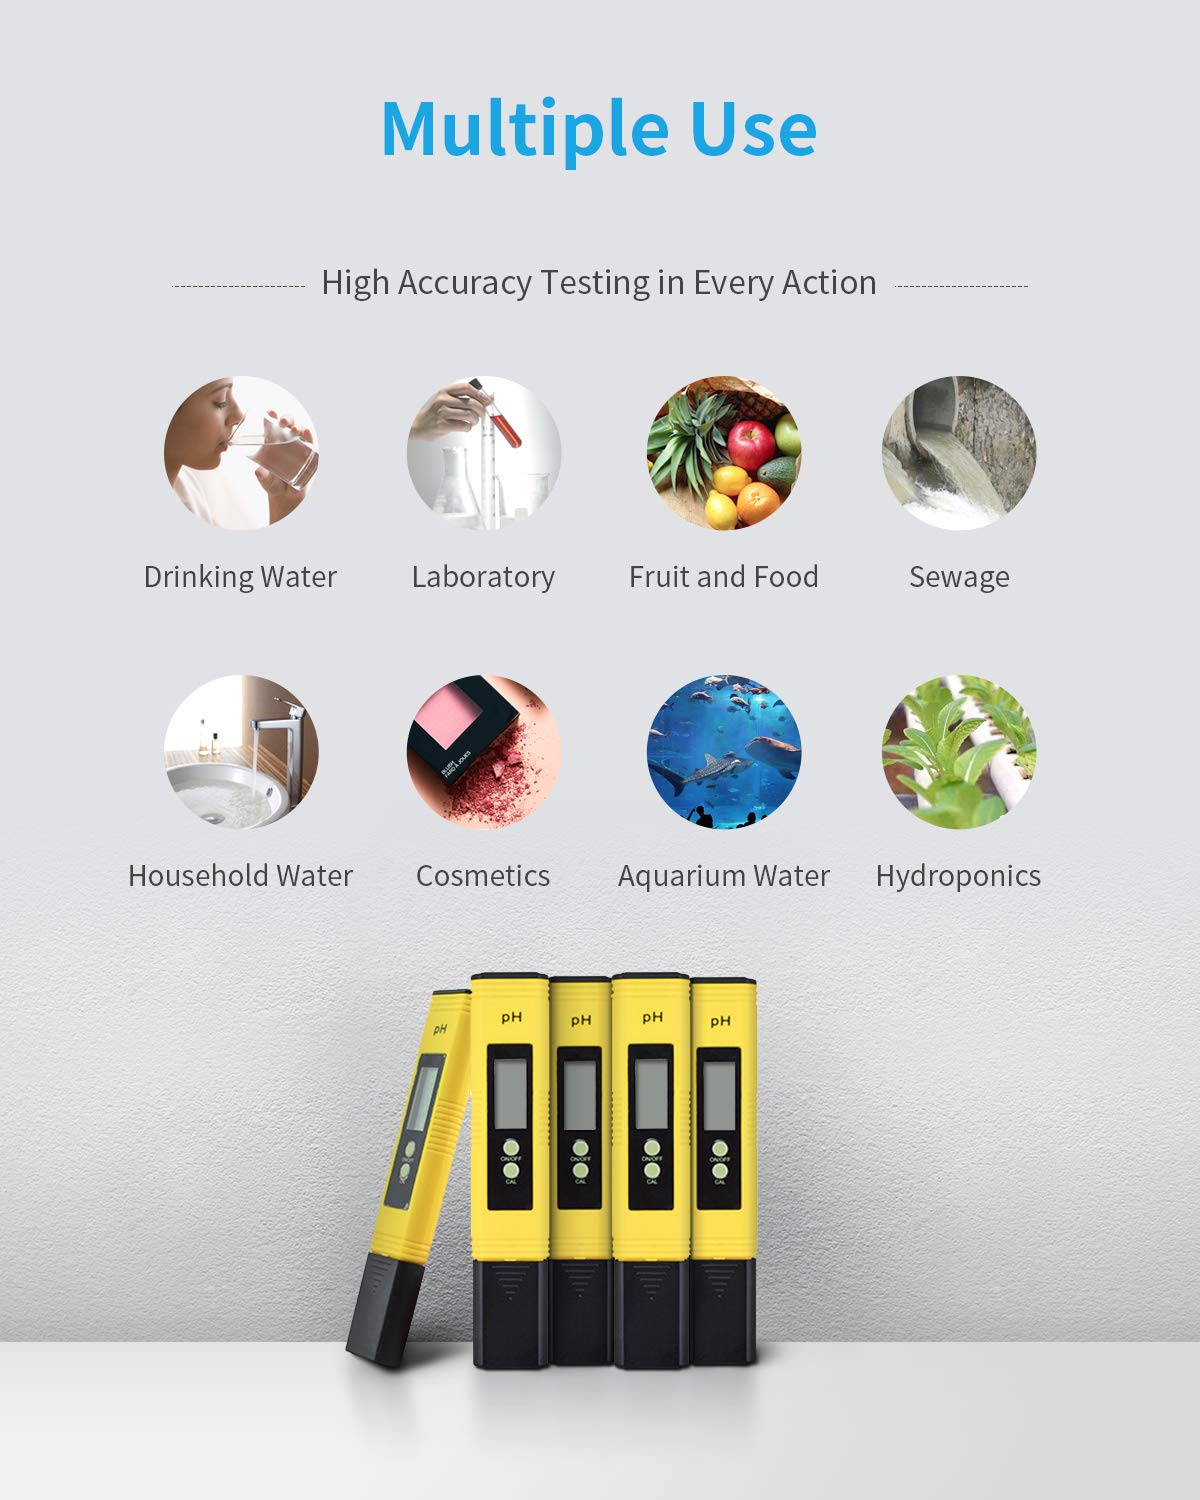 SPIE Digital pH Meter Swimming Pools etc Pocket-Sized Water Quality Tester with LCD Display and ATC pH 0-14 Measurement Range for Household Drinking Water pH Meter pH 0.01 Resolution Aquarium